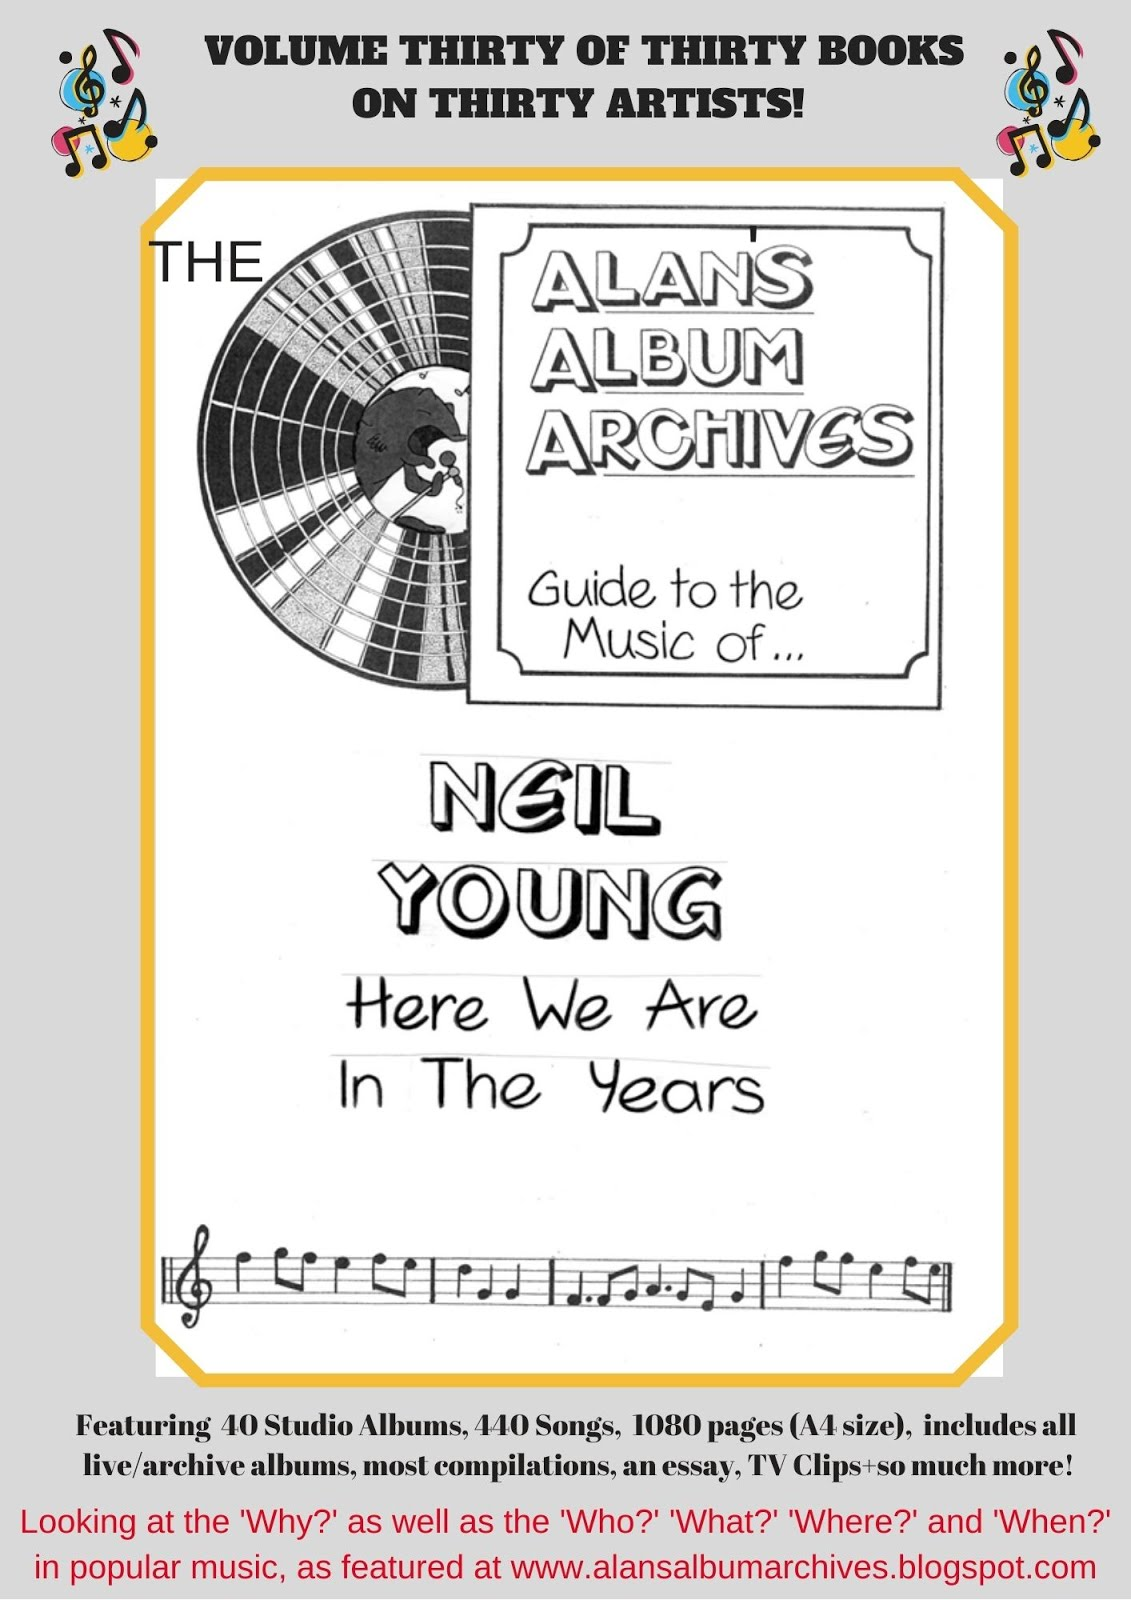 'Here We Are In The Years - The Alan's Album Archives Guide To The Music Of...Neil Young'